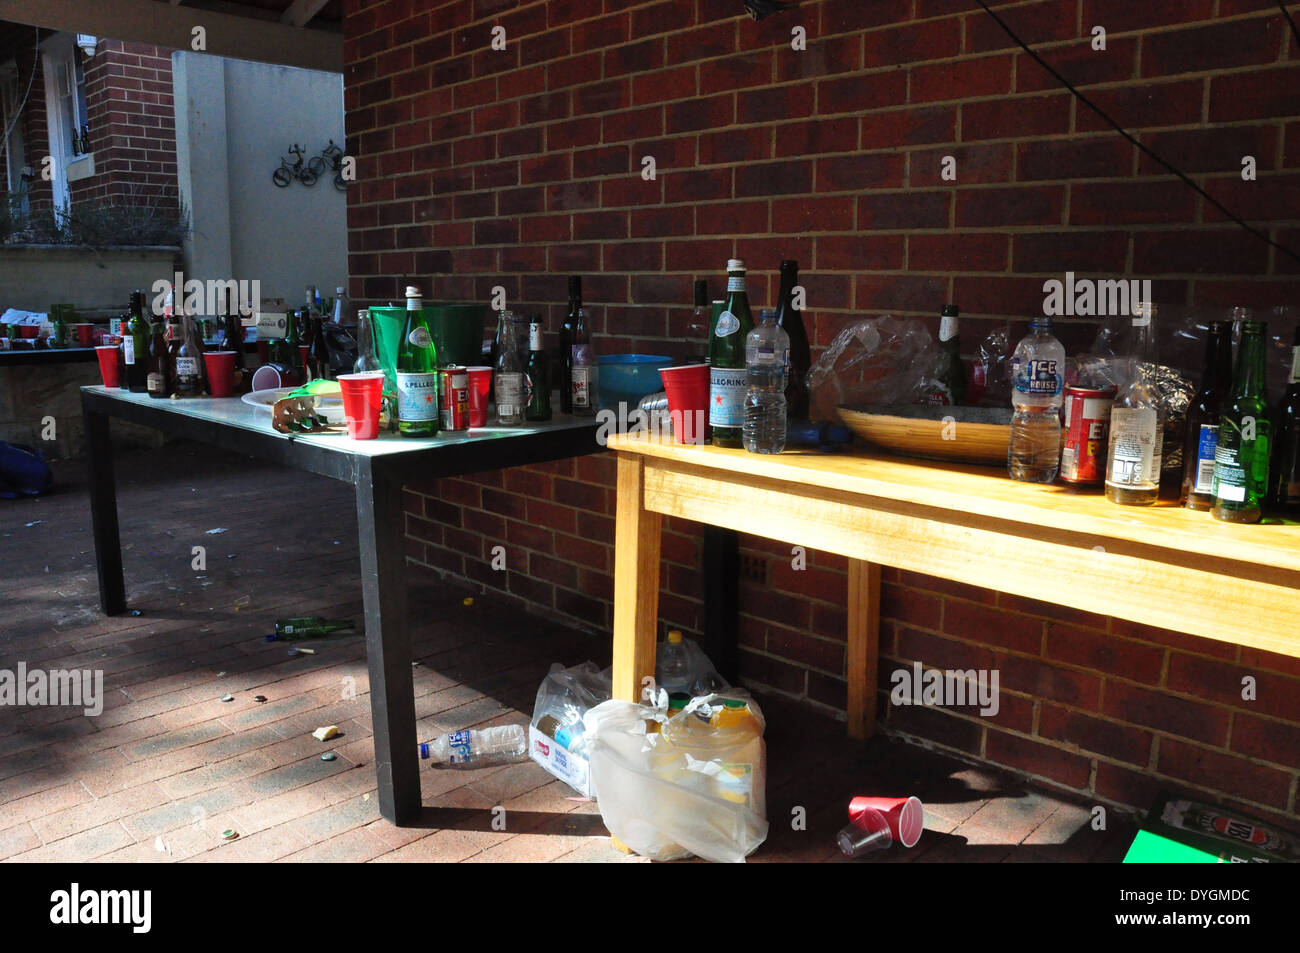 The day after a teenagers' party. - Stock Image